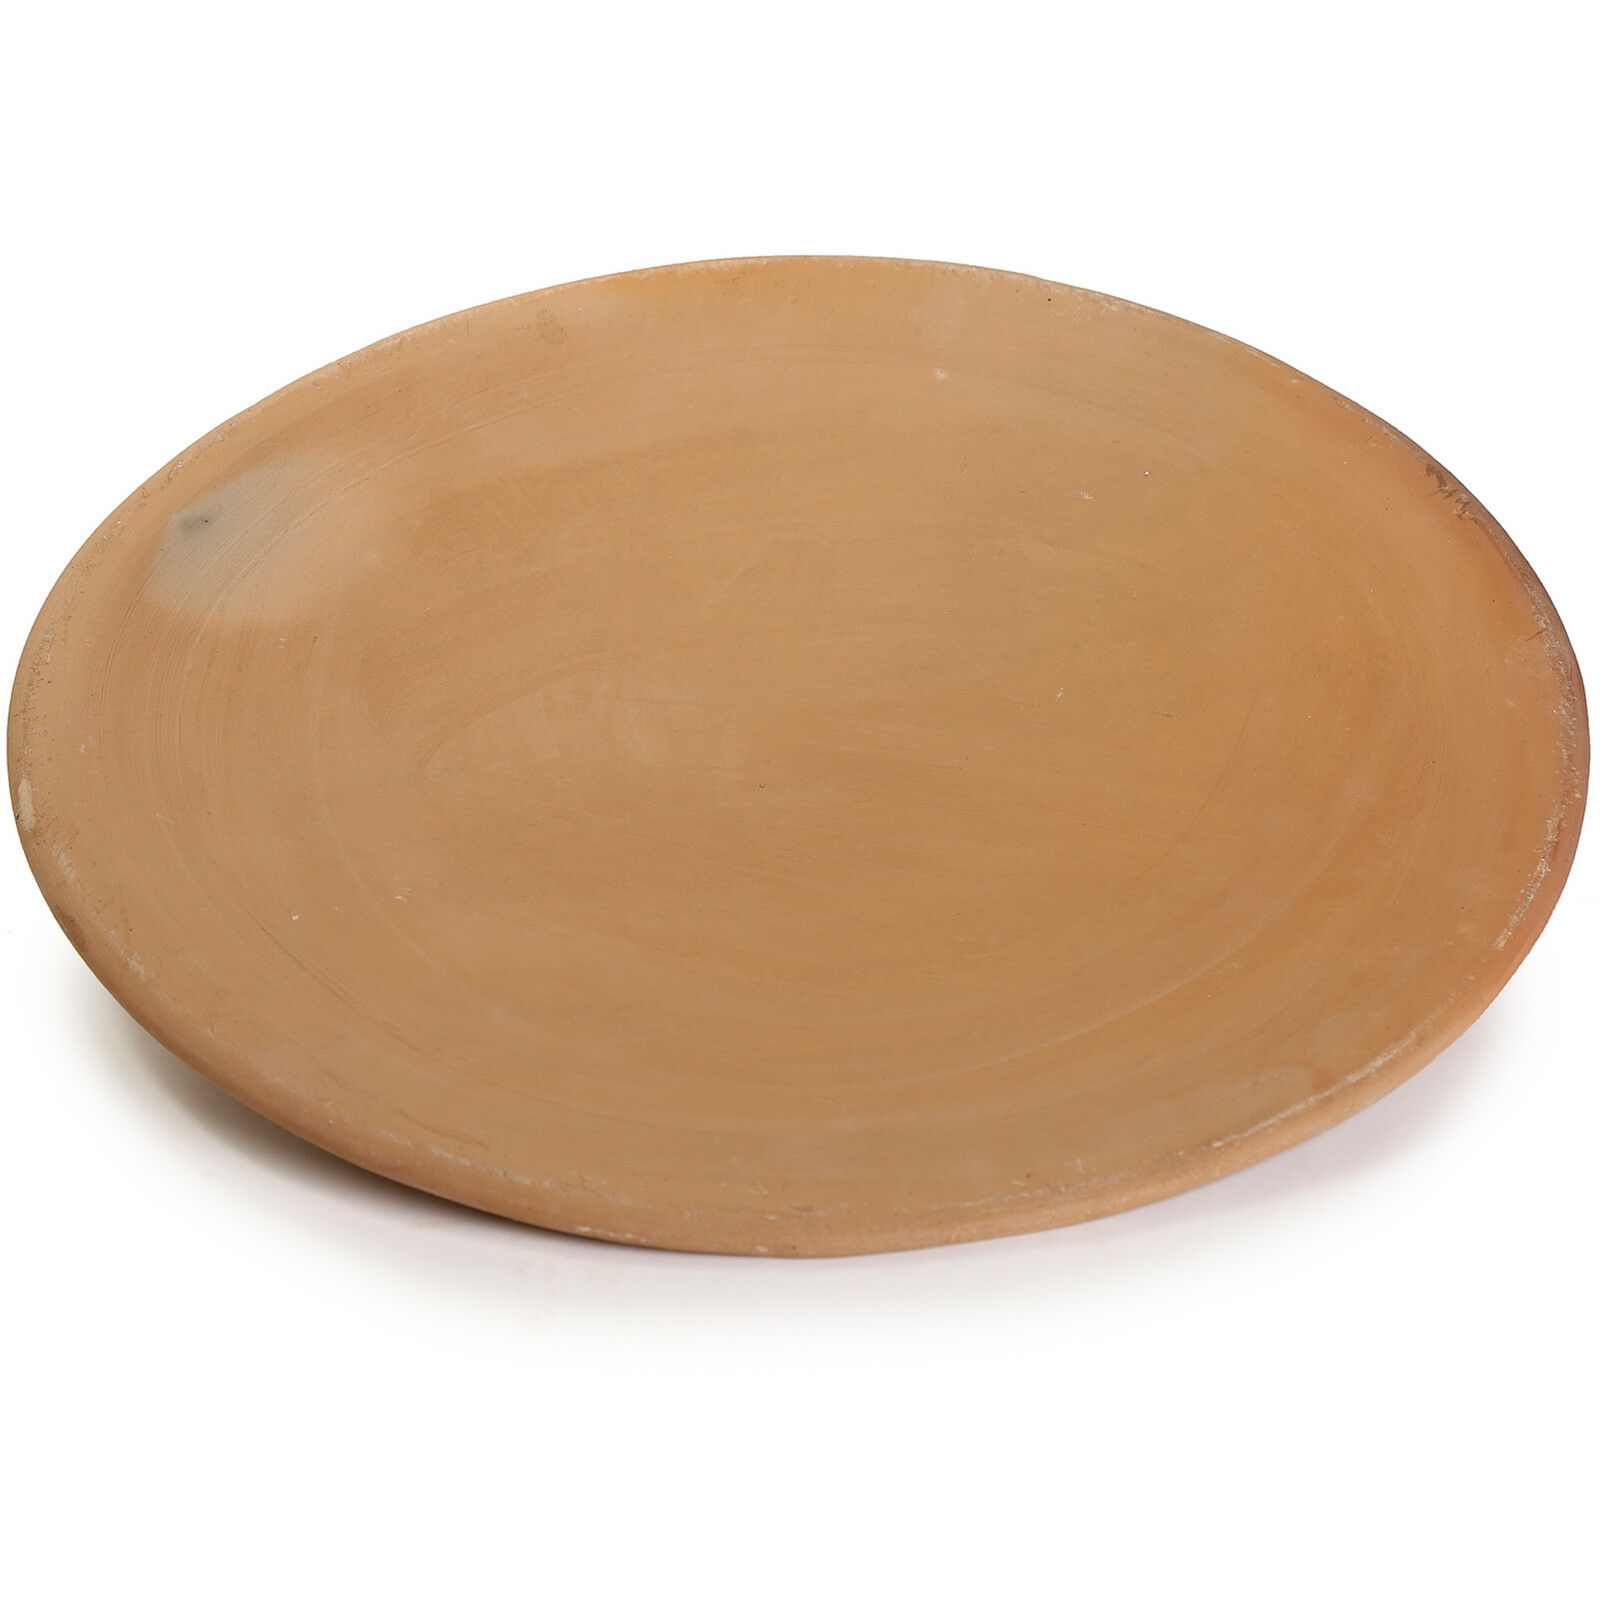 Mexican Clay Comal - Extra Large